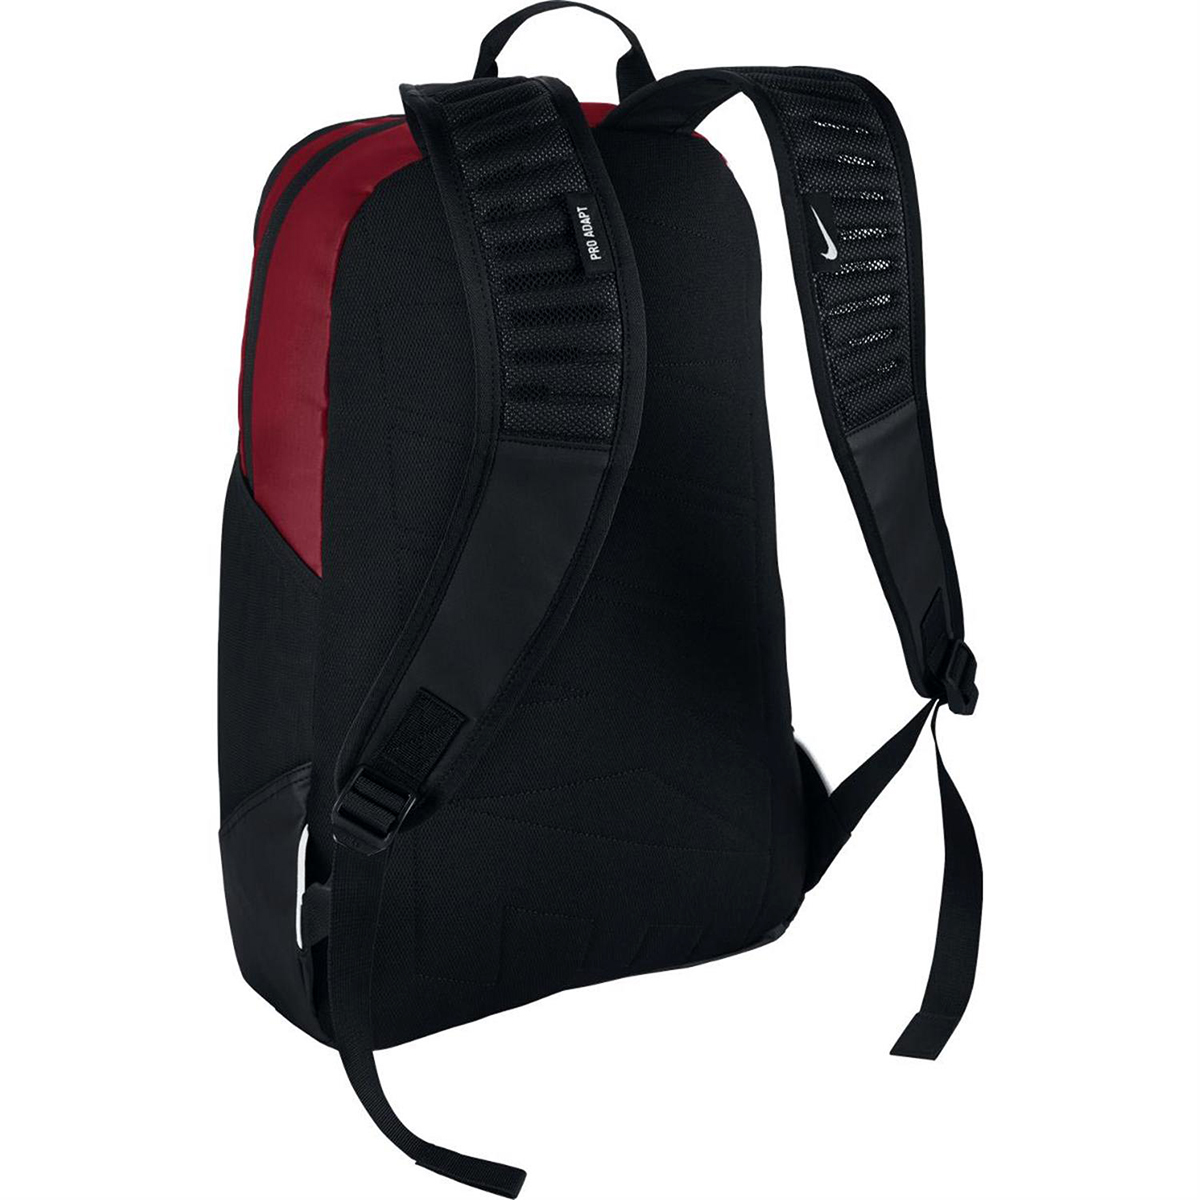 Nike Alph Adpt Rev backpack - BASKETBALL GOODS Backpacks ...